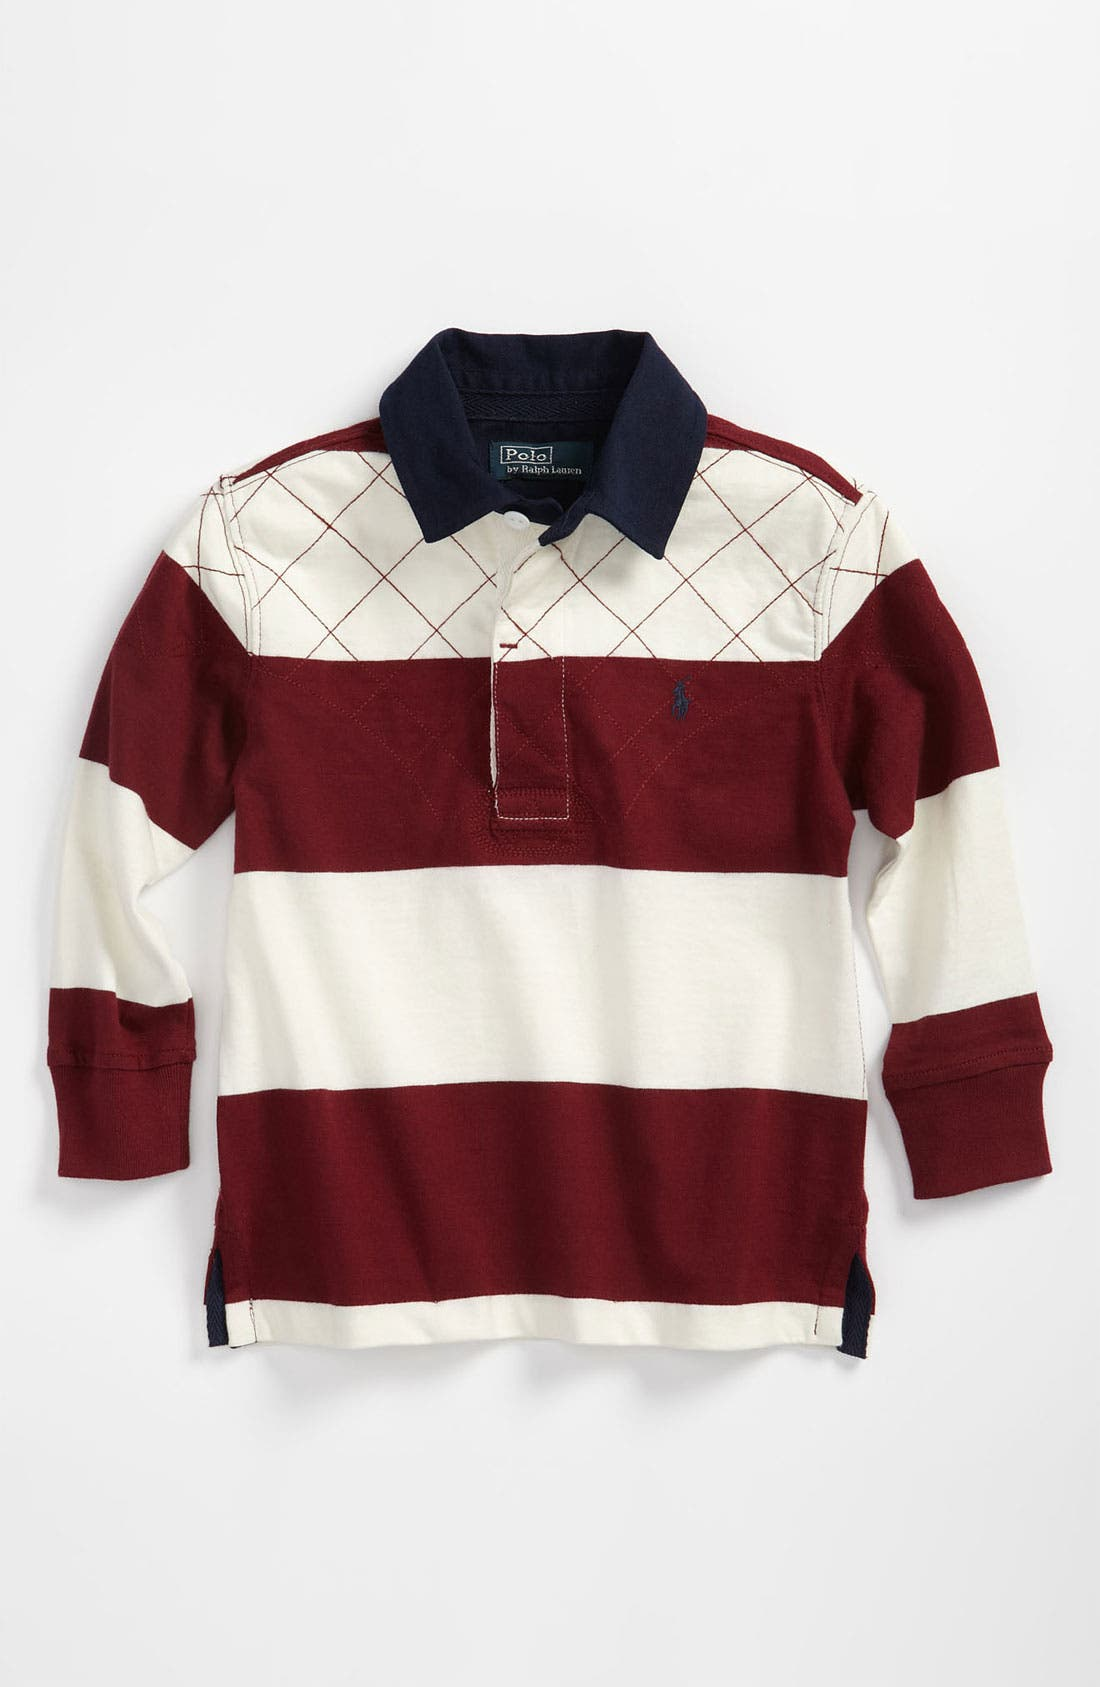 Alternate Image 1 Selected - Ralph Lauren Rugby Stripe Shirt (Toddler)